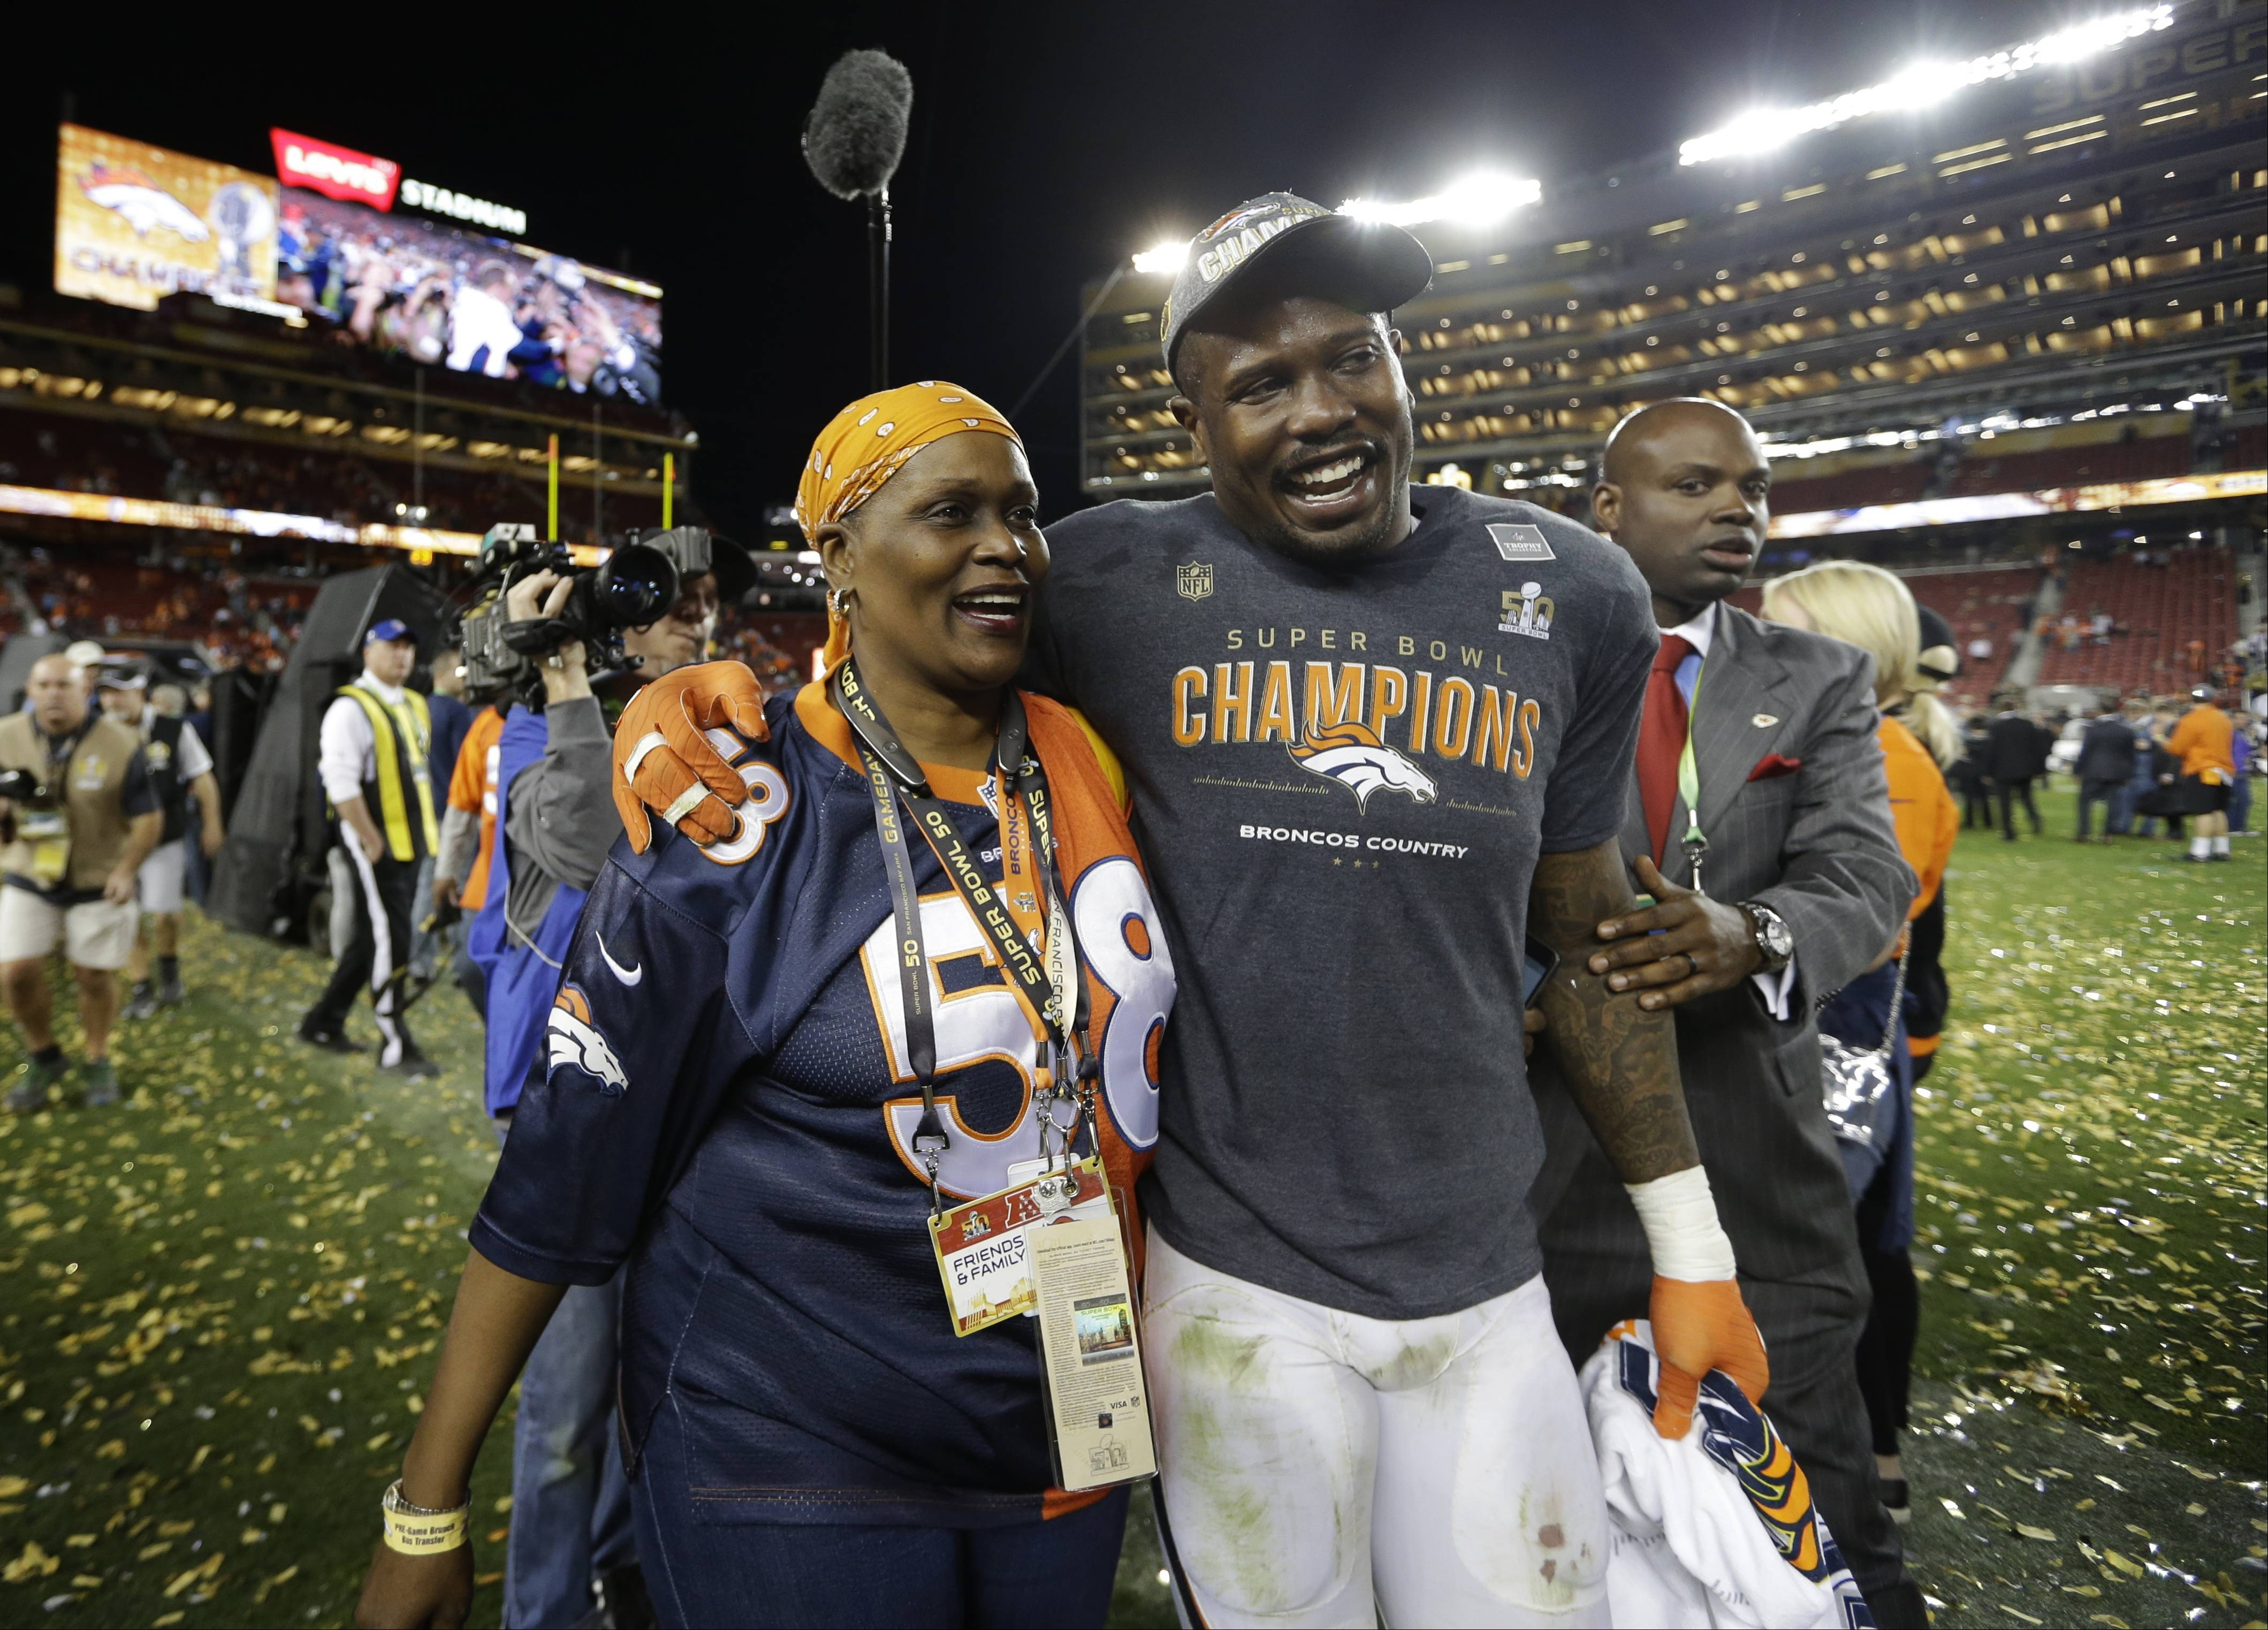 Denver Broncos linebacker and Super Bowl 50 MVP Von Miller walks off the field with his mother, Gloria, after Sunday's victory over the Carolina Panthers in Santa Clara, Calif. The Broncos won 24-10. (AP Photo/Jae C. Hong)